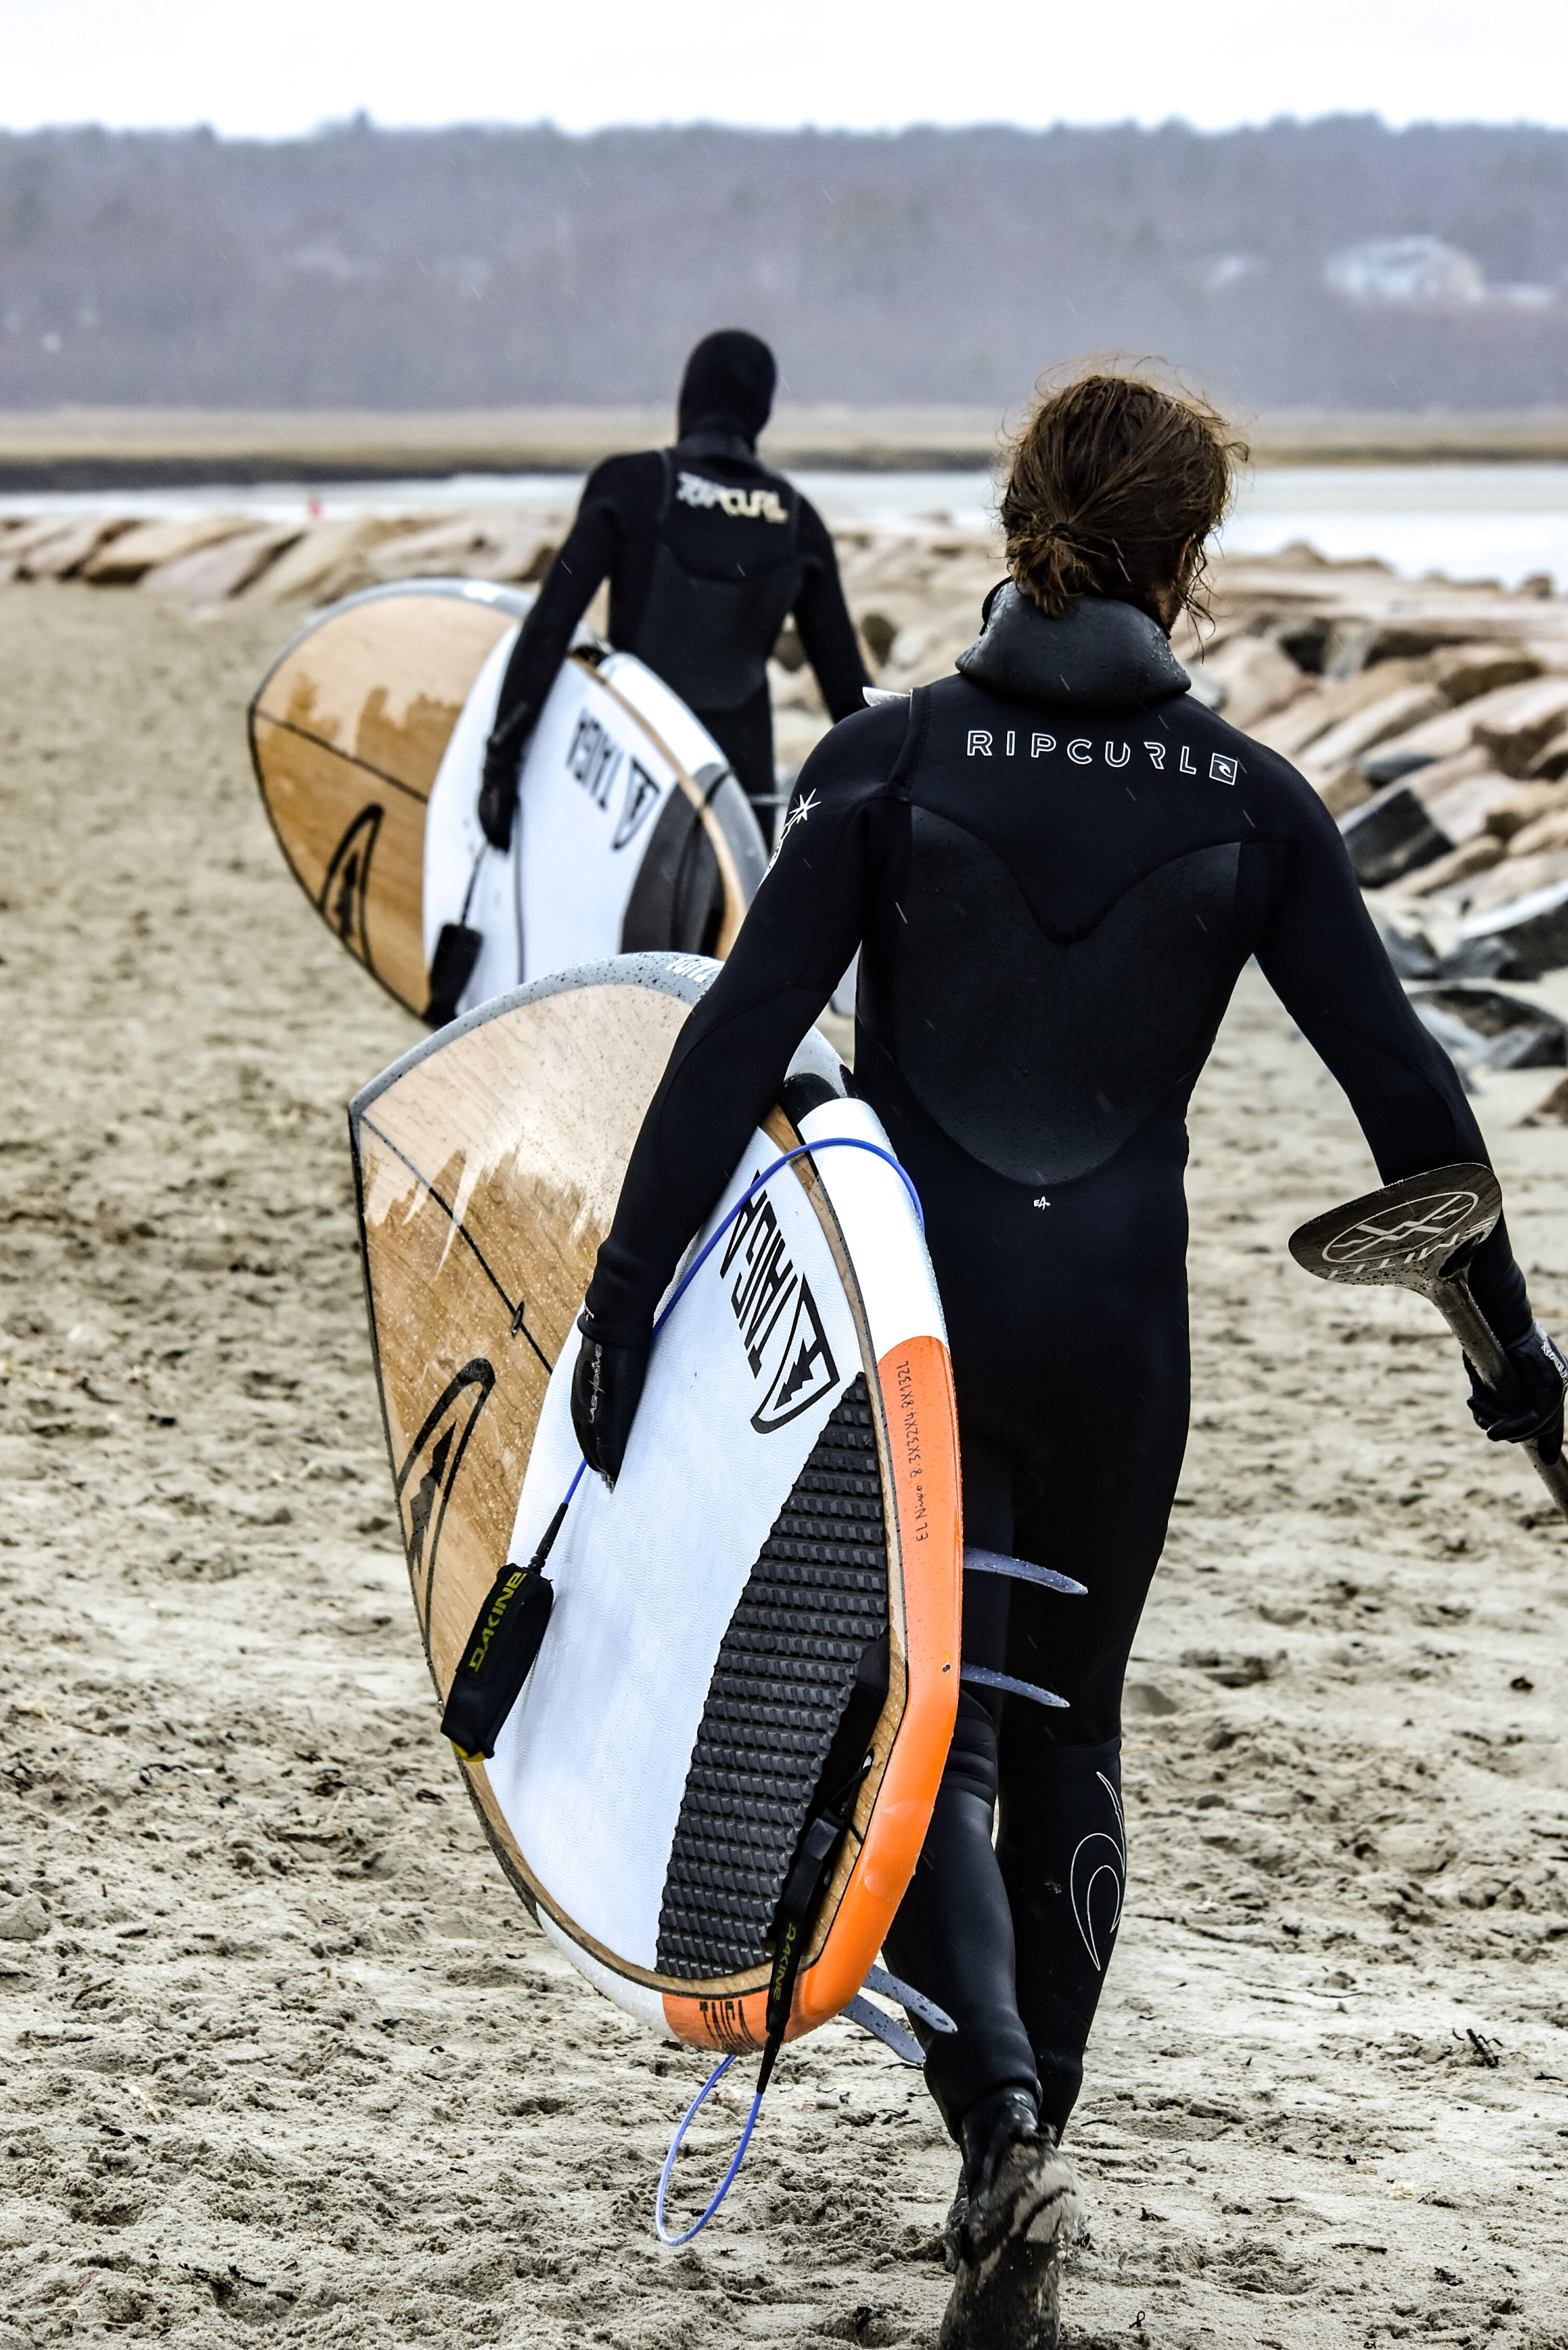 Two male paddleboarders wearing wetsuits walking along the beach at Wells, carrying their boards under their arms